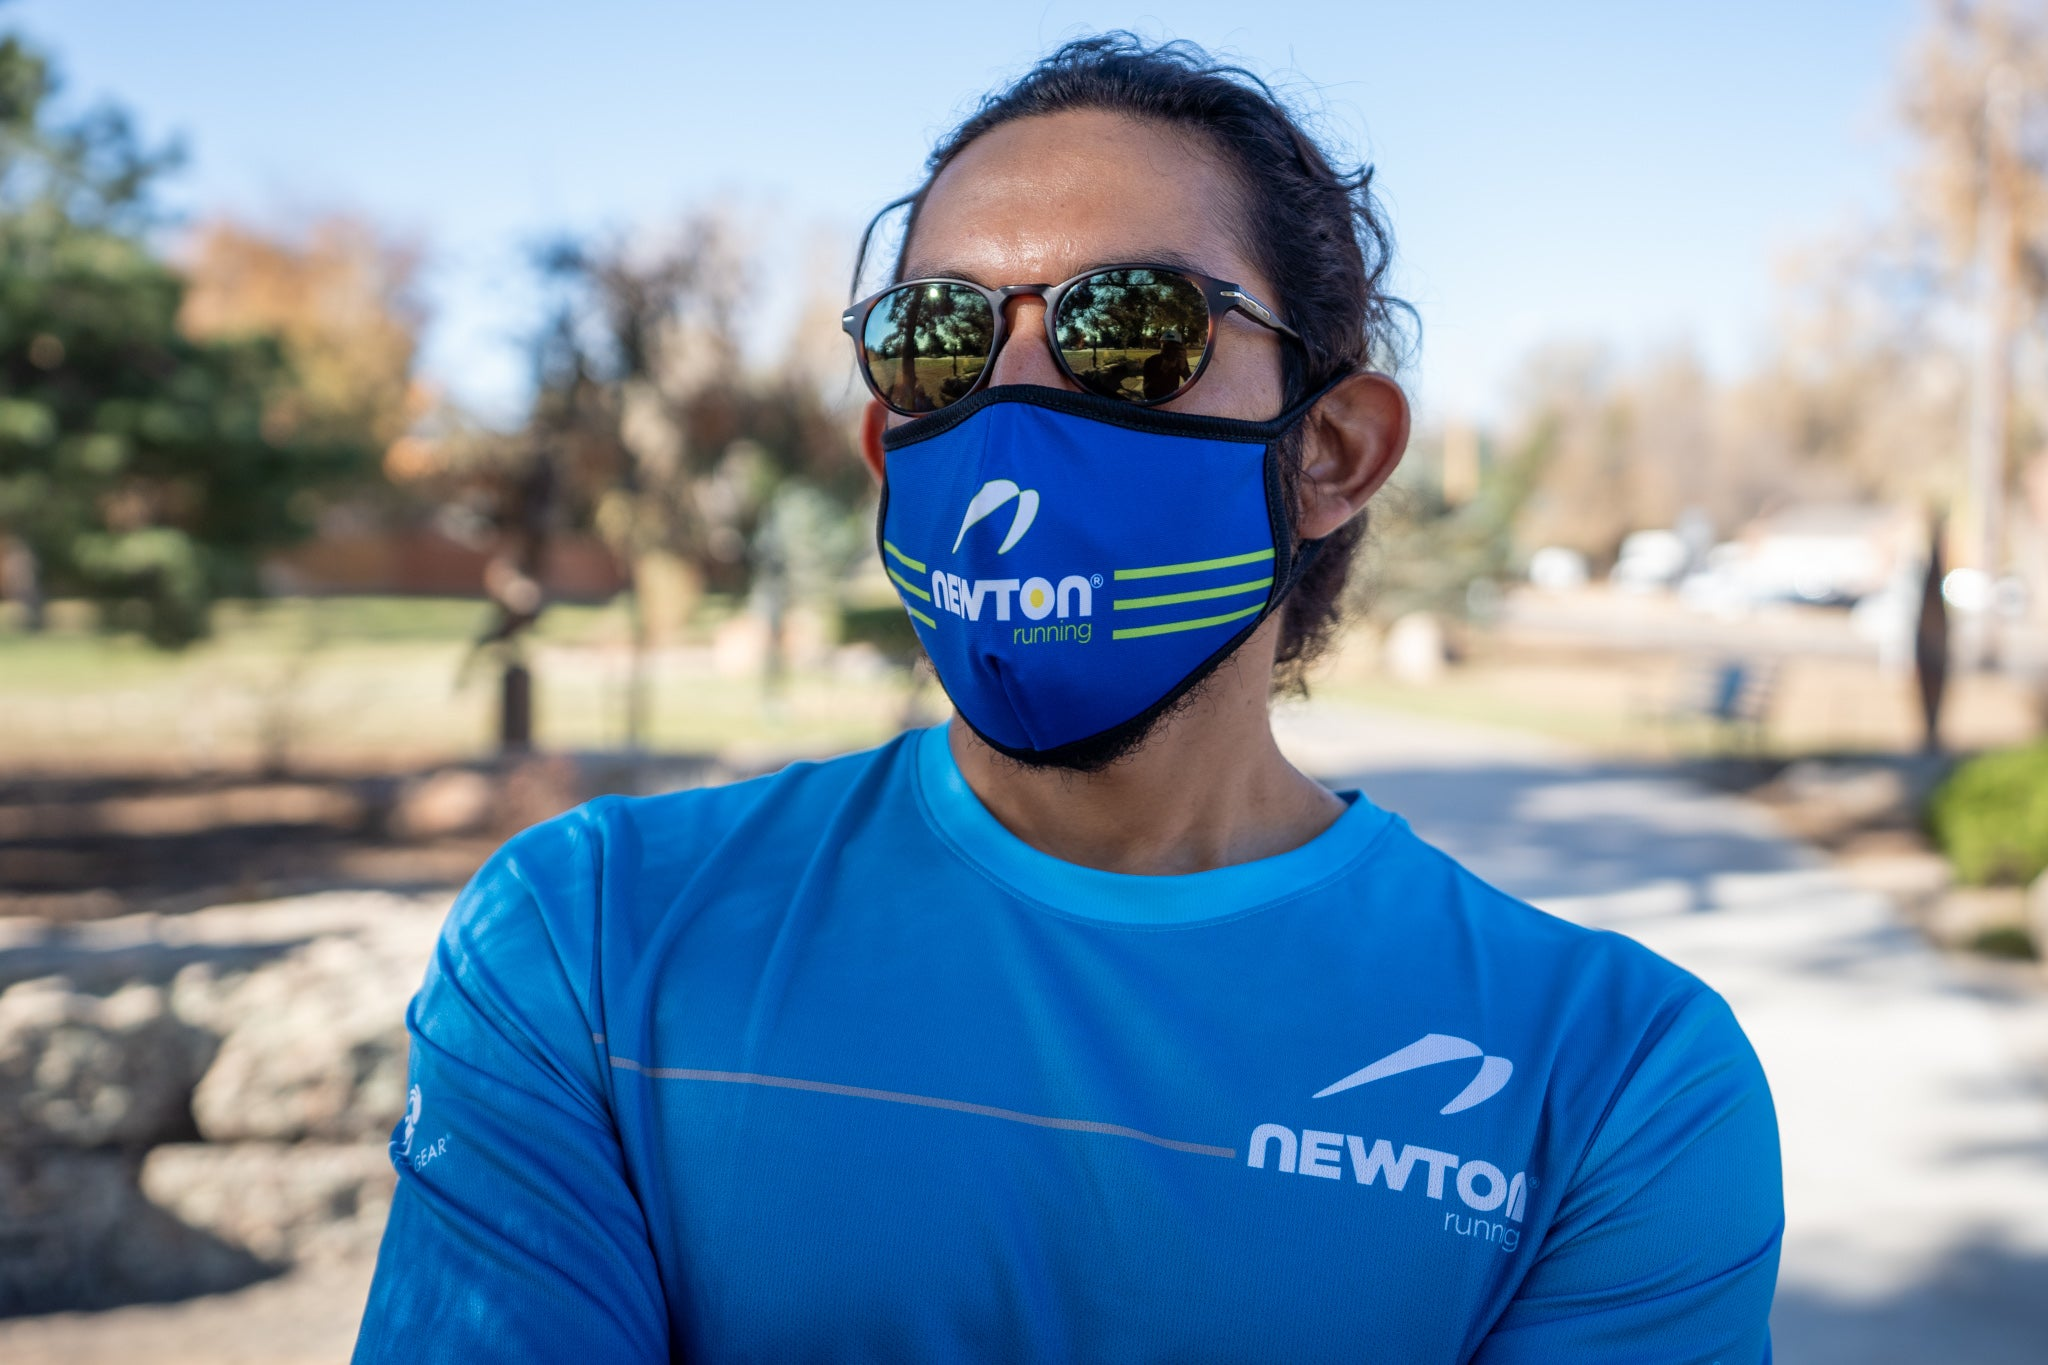 Newton Running Reversible Face Mask